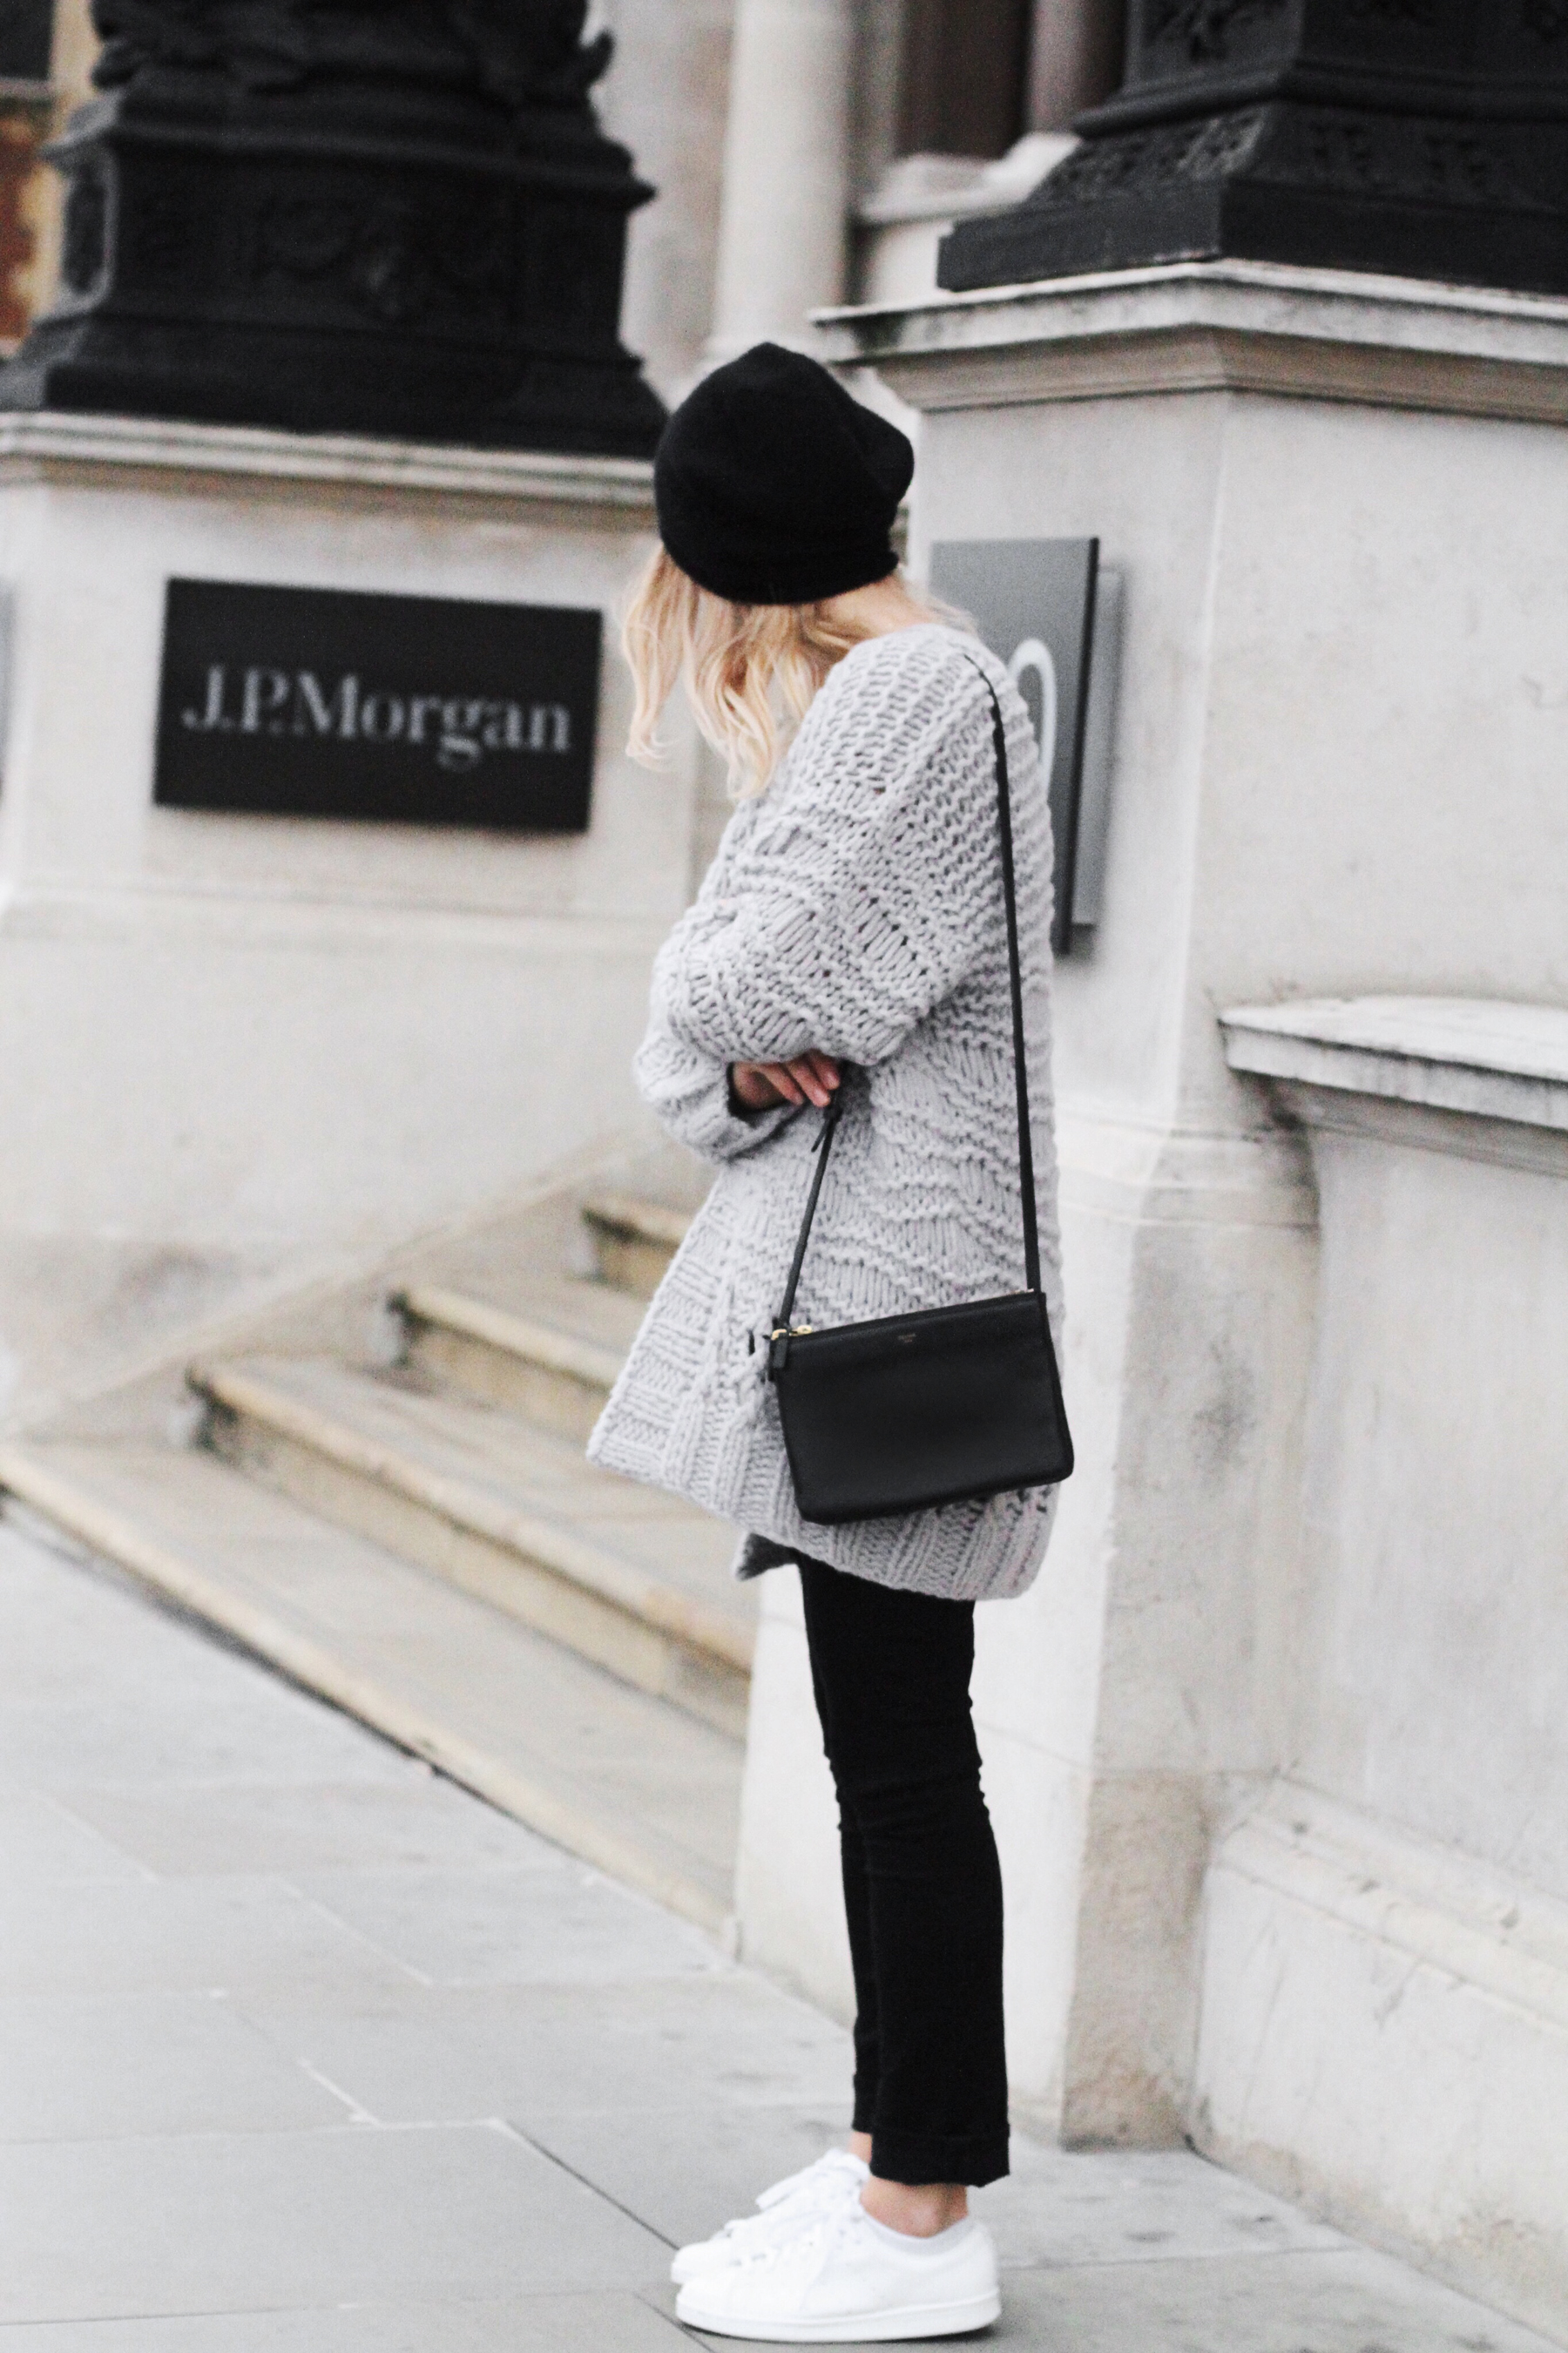 Black jeans and white sneakers will always make the perfect combination. Mirjam Flatau wears this look with an oversized knit sweater and a cute black beanie. Cardigan: Ira Von Arnim, Jeans: AYR, Tee: Bassike, Bag: Celine, Beanie: Cos.